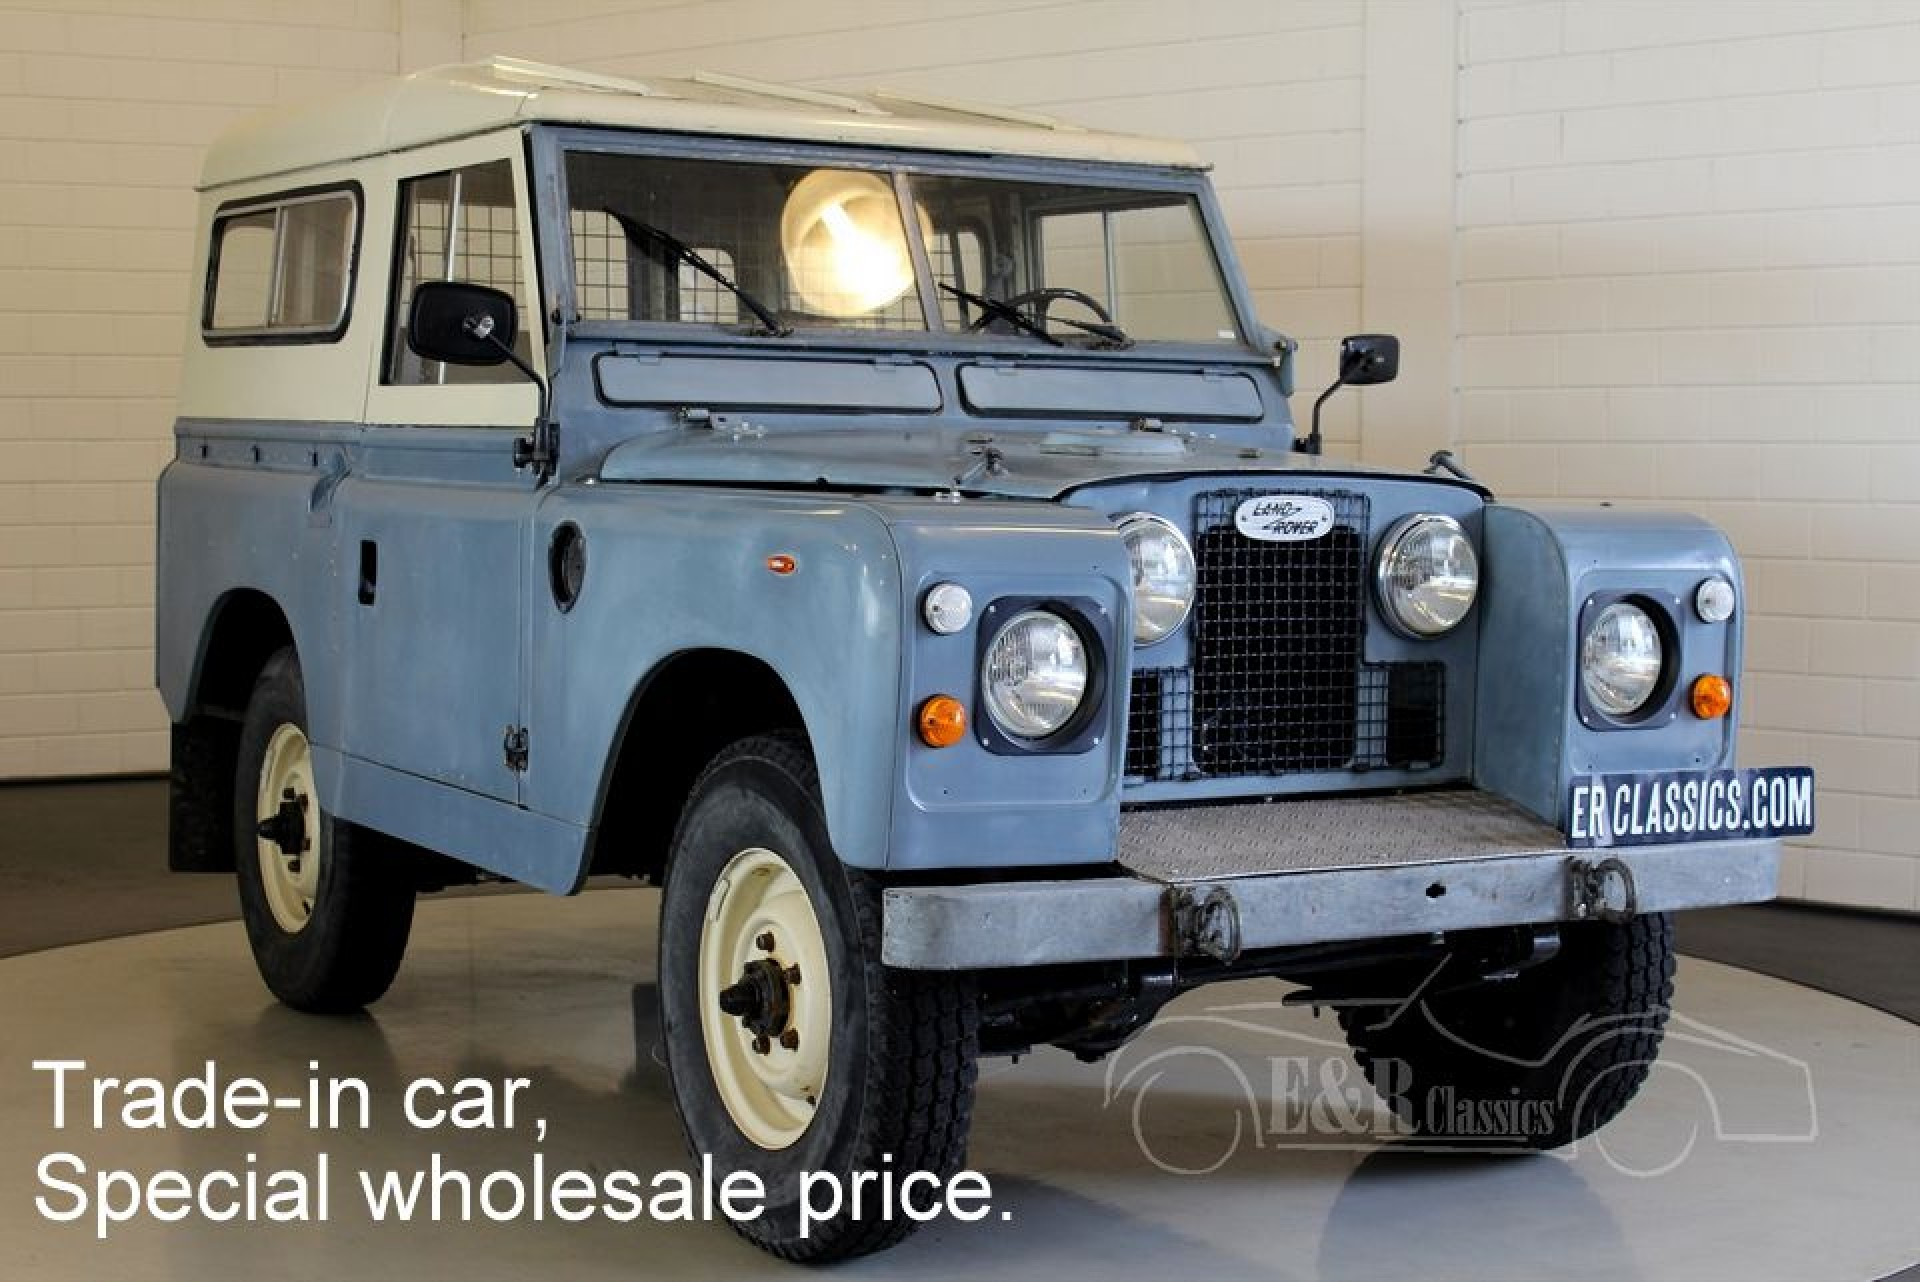 Land Rover 88 Series II A 1963 for sale at ERclassics